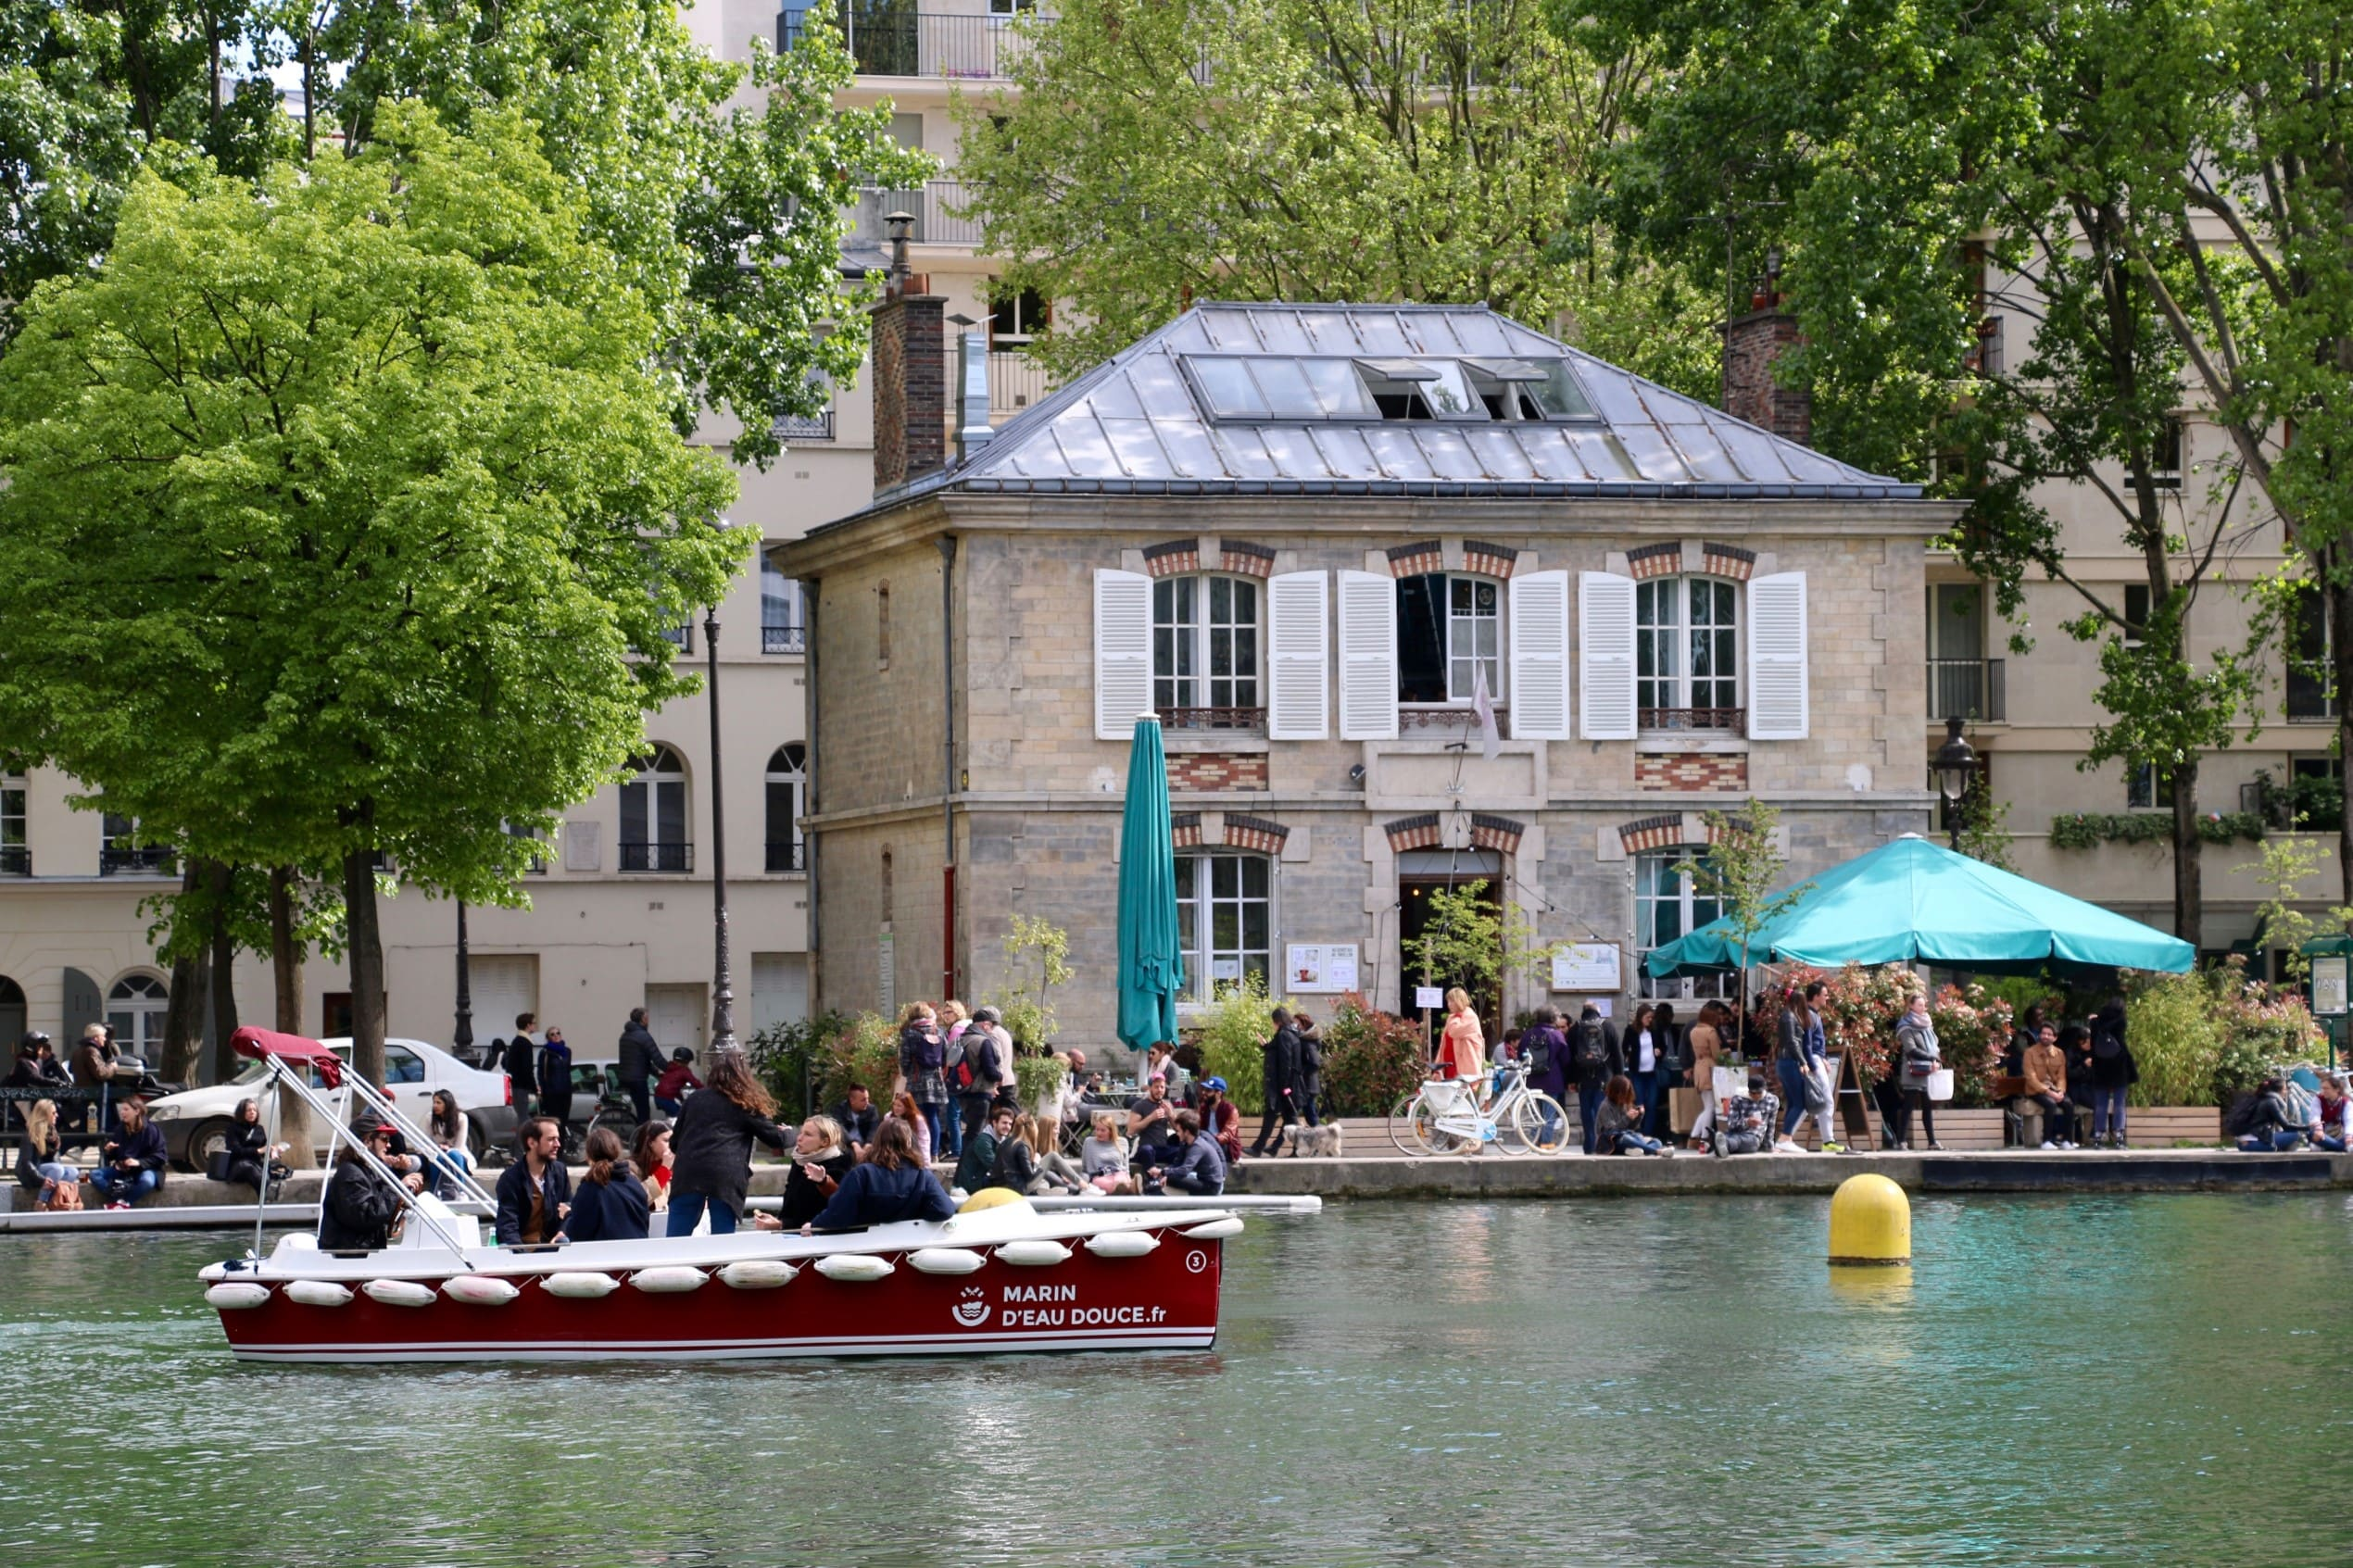 The canal de l'ourcq in Paris with a bustling cafe and riverway